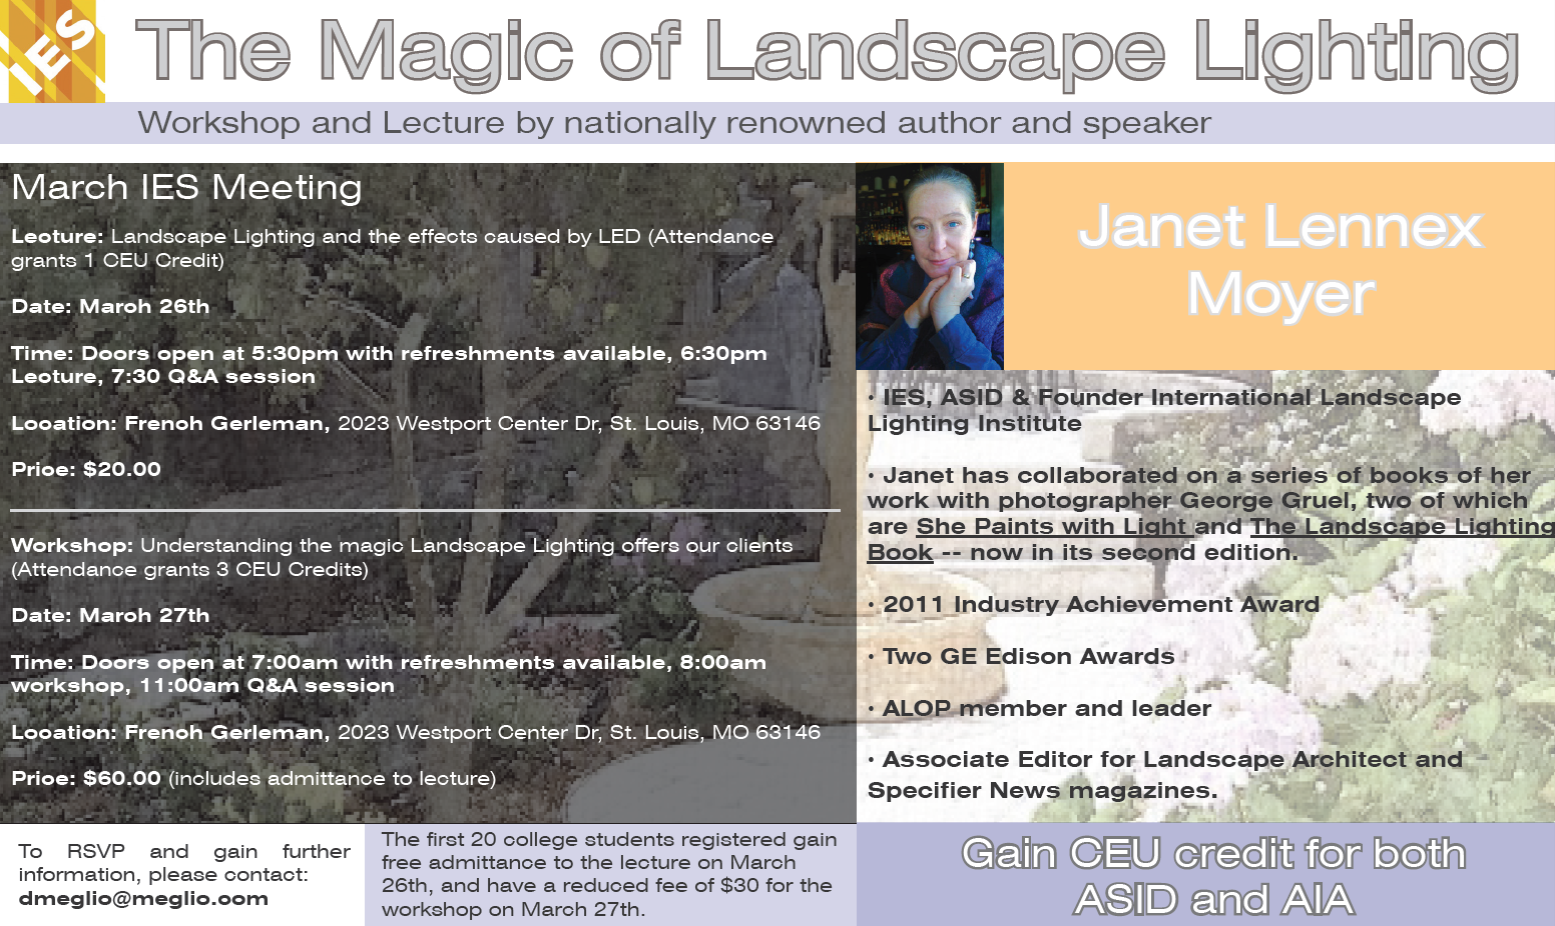 JANET MOYER LECTURE